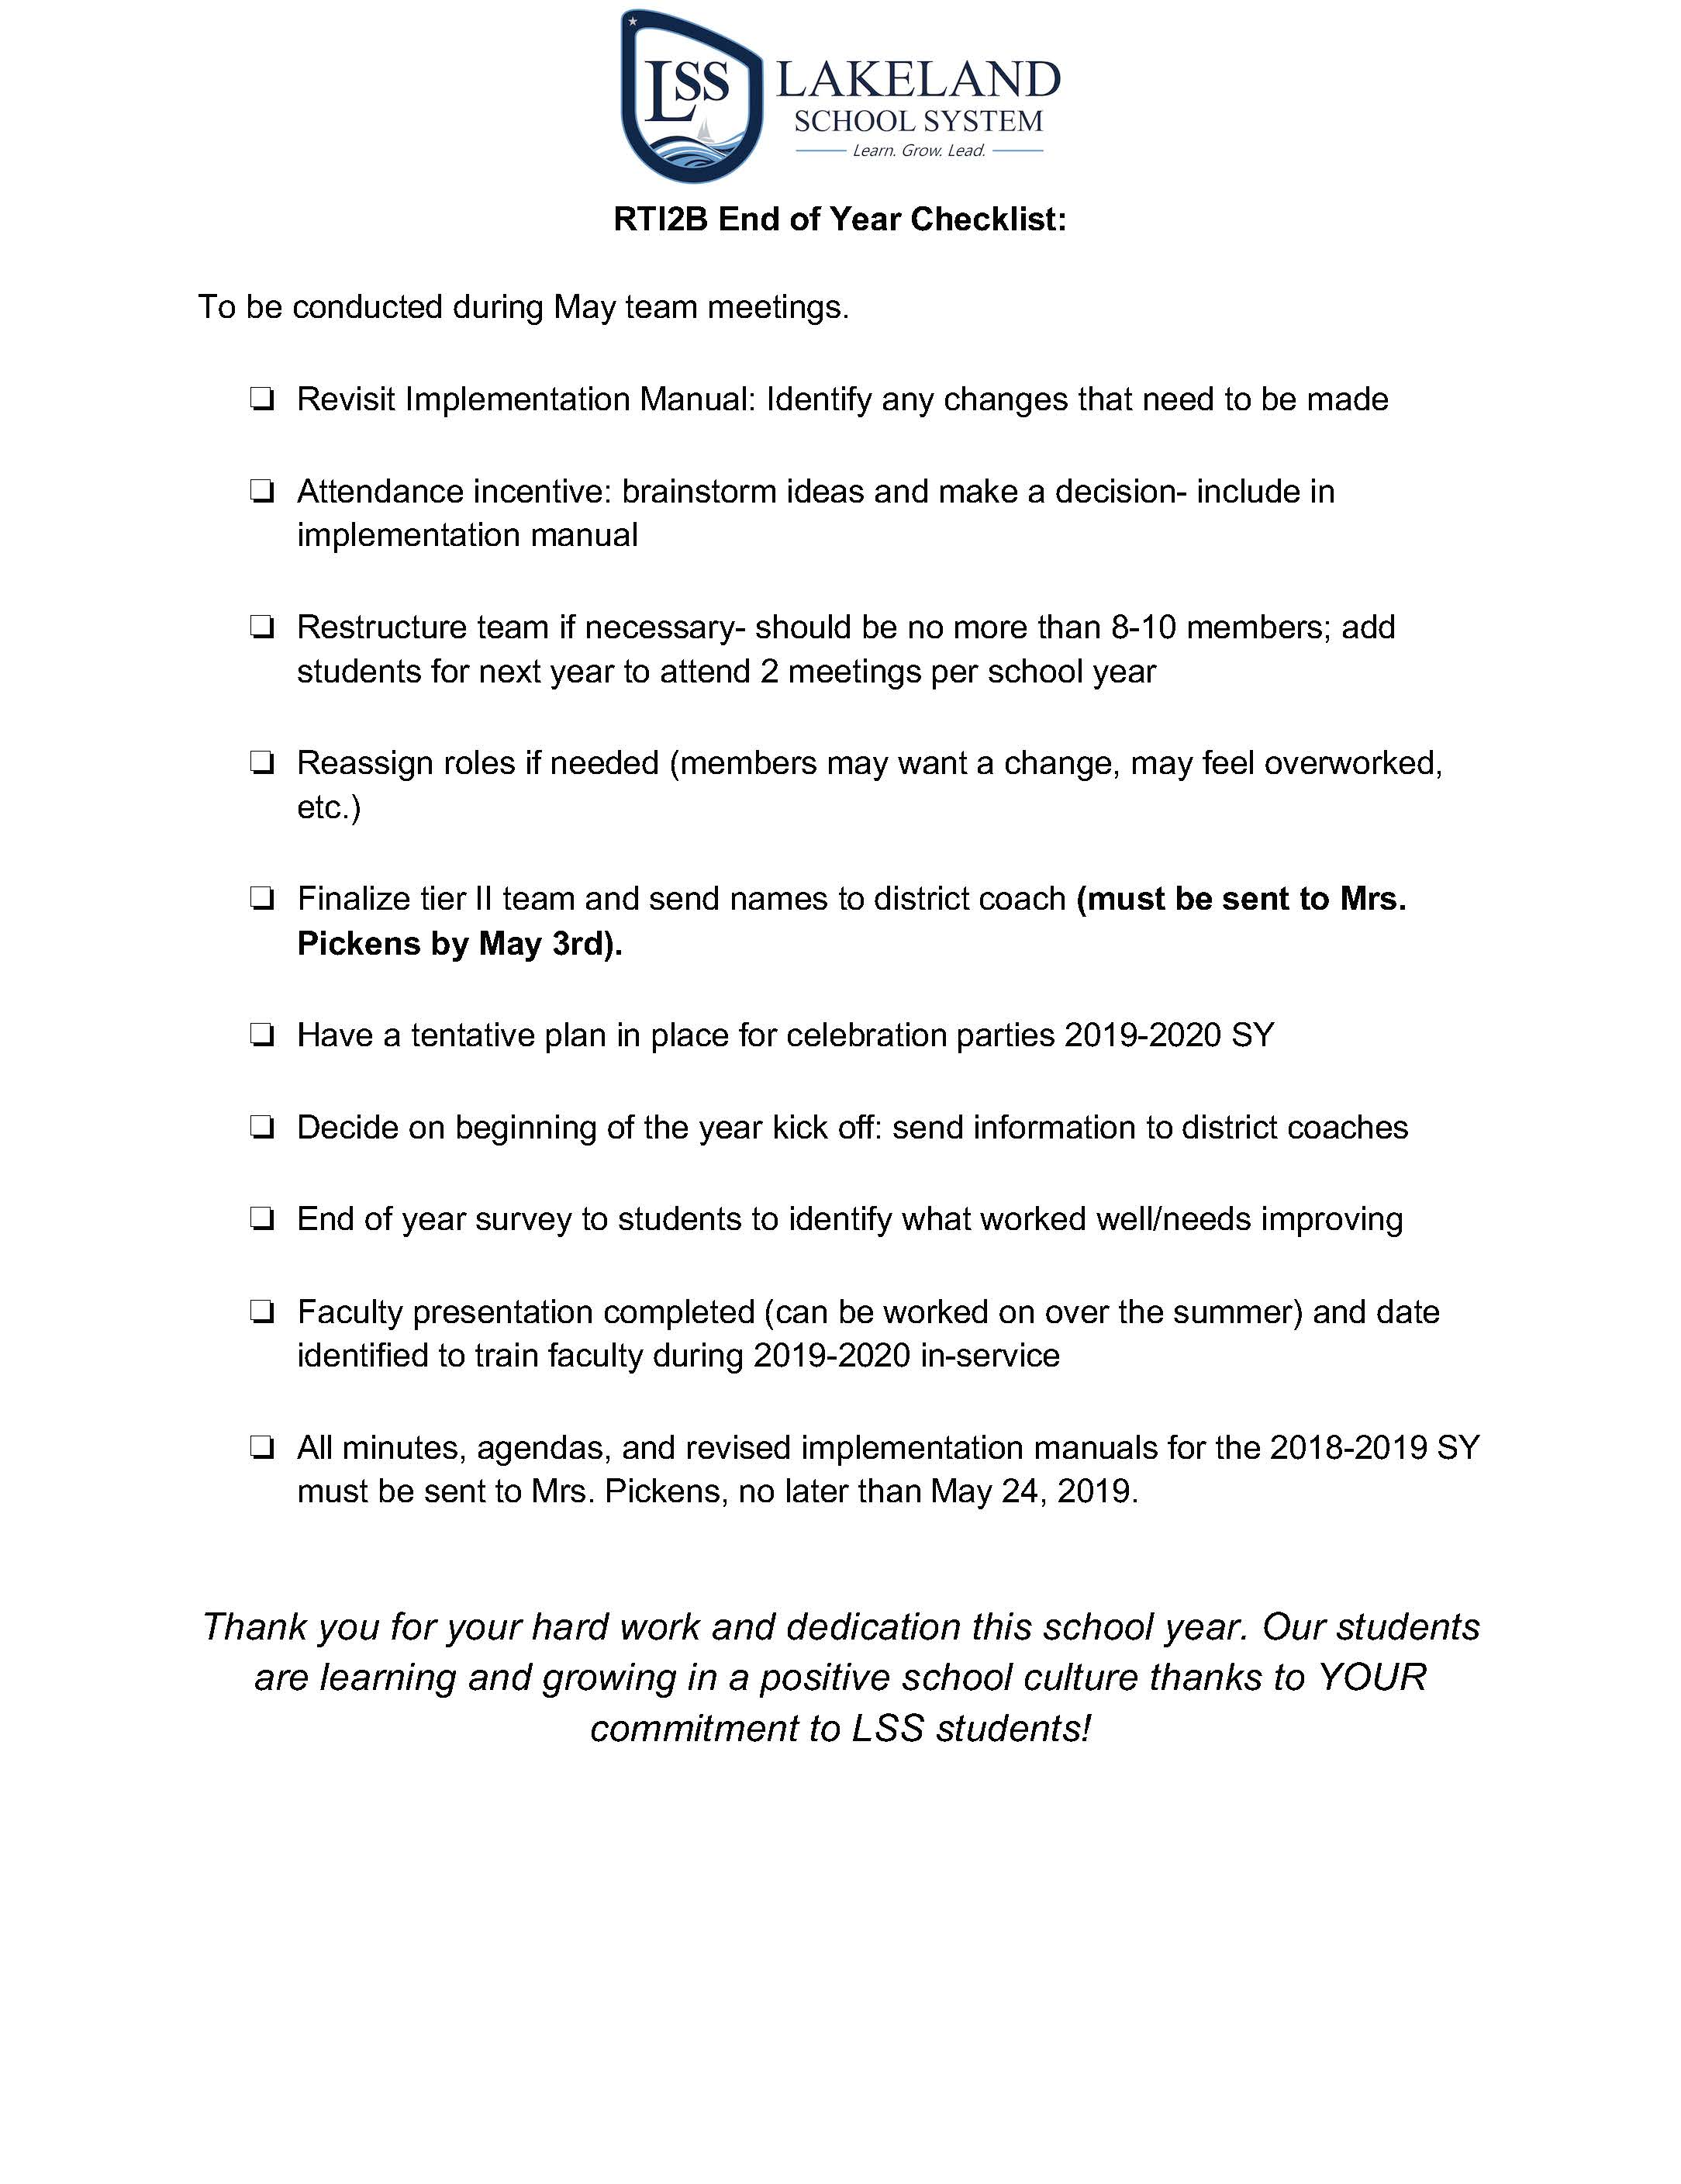 Lakeland School System's End of Year Checklist for RTI2-B. Click on the image to download an editable word document file.